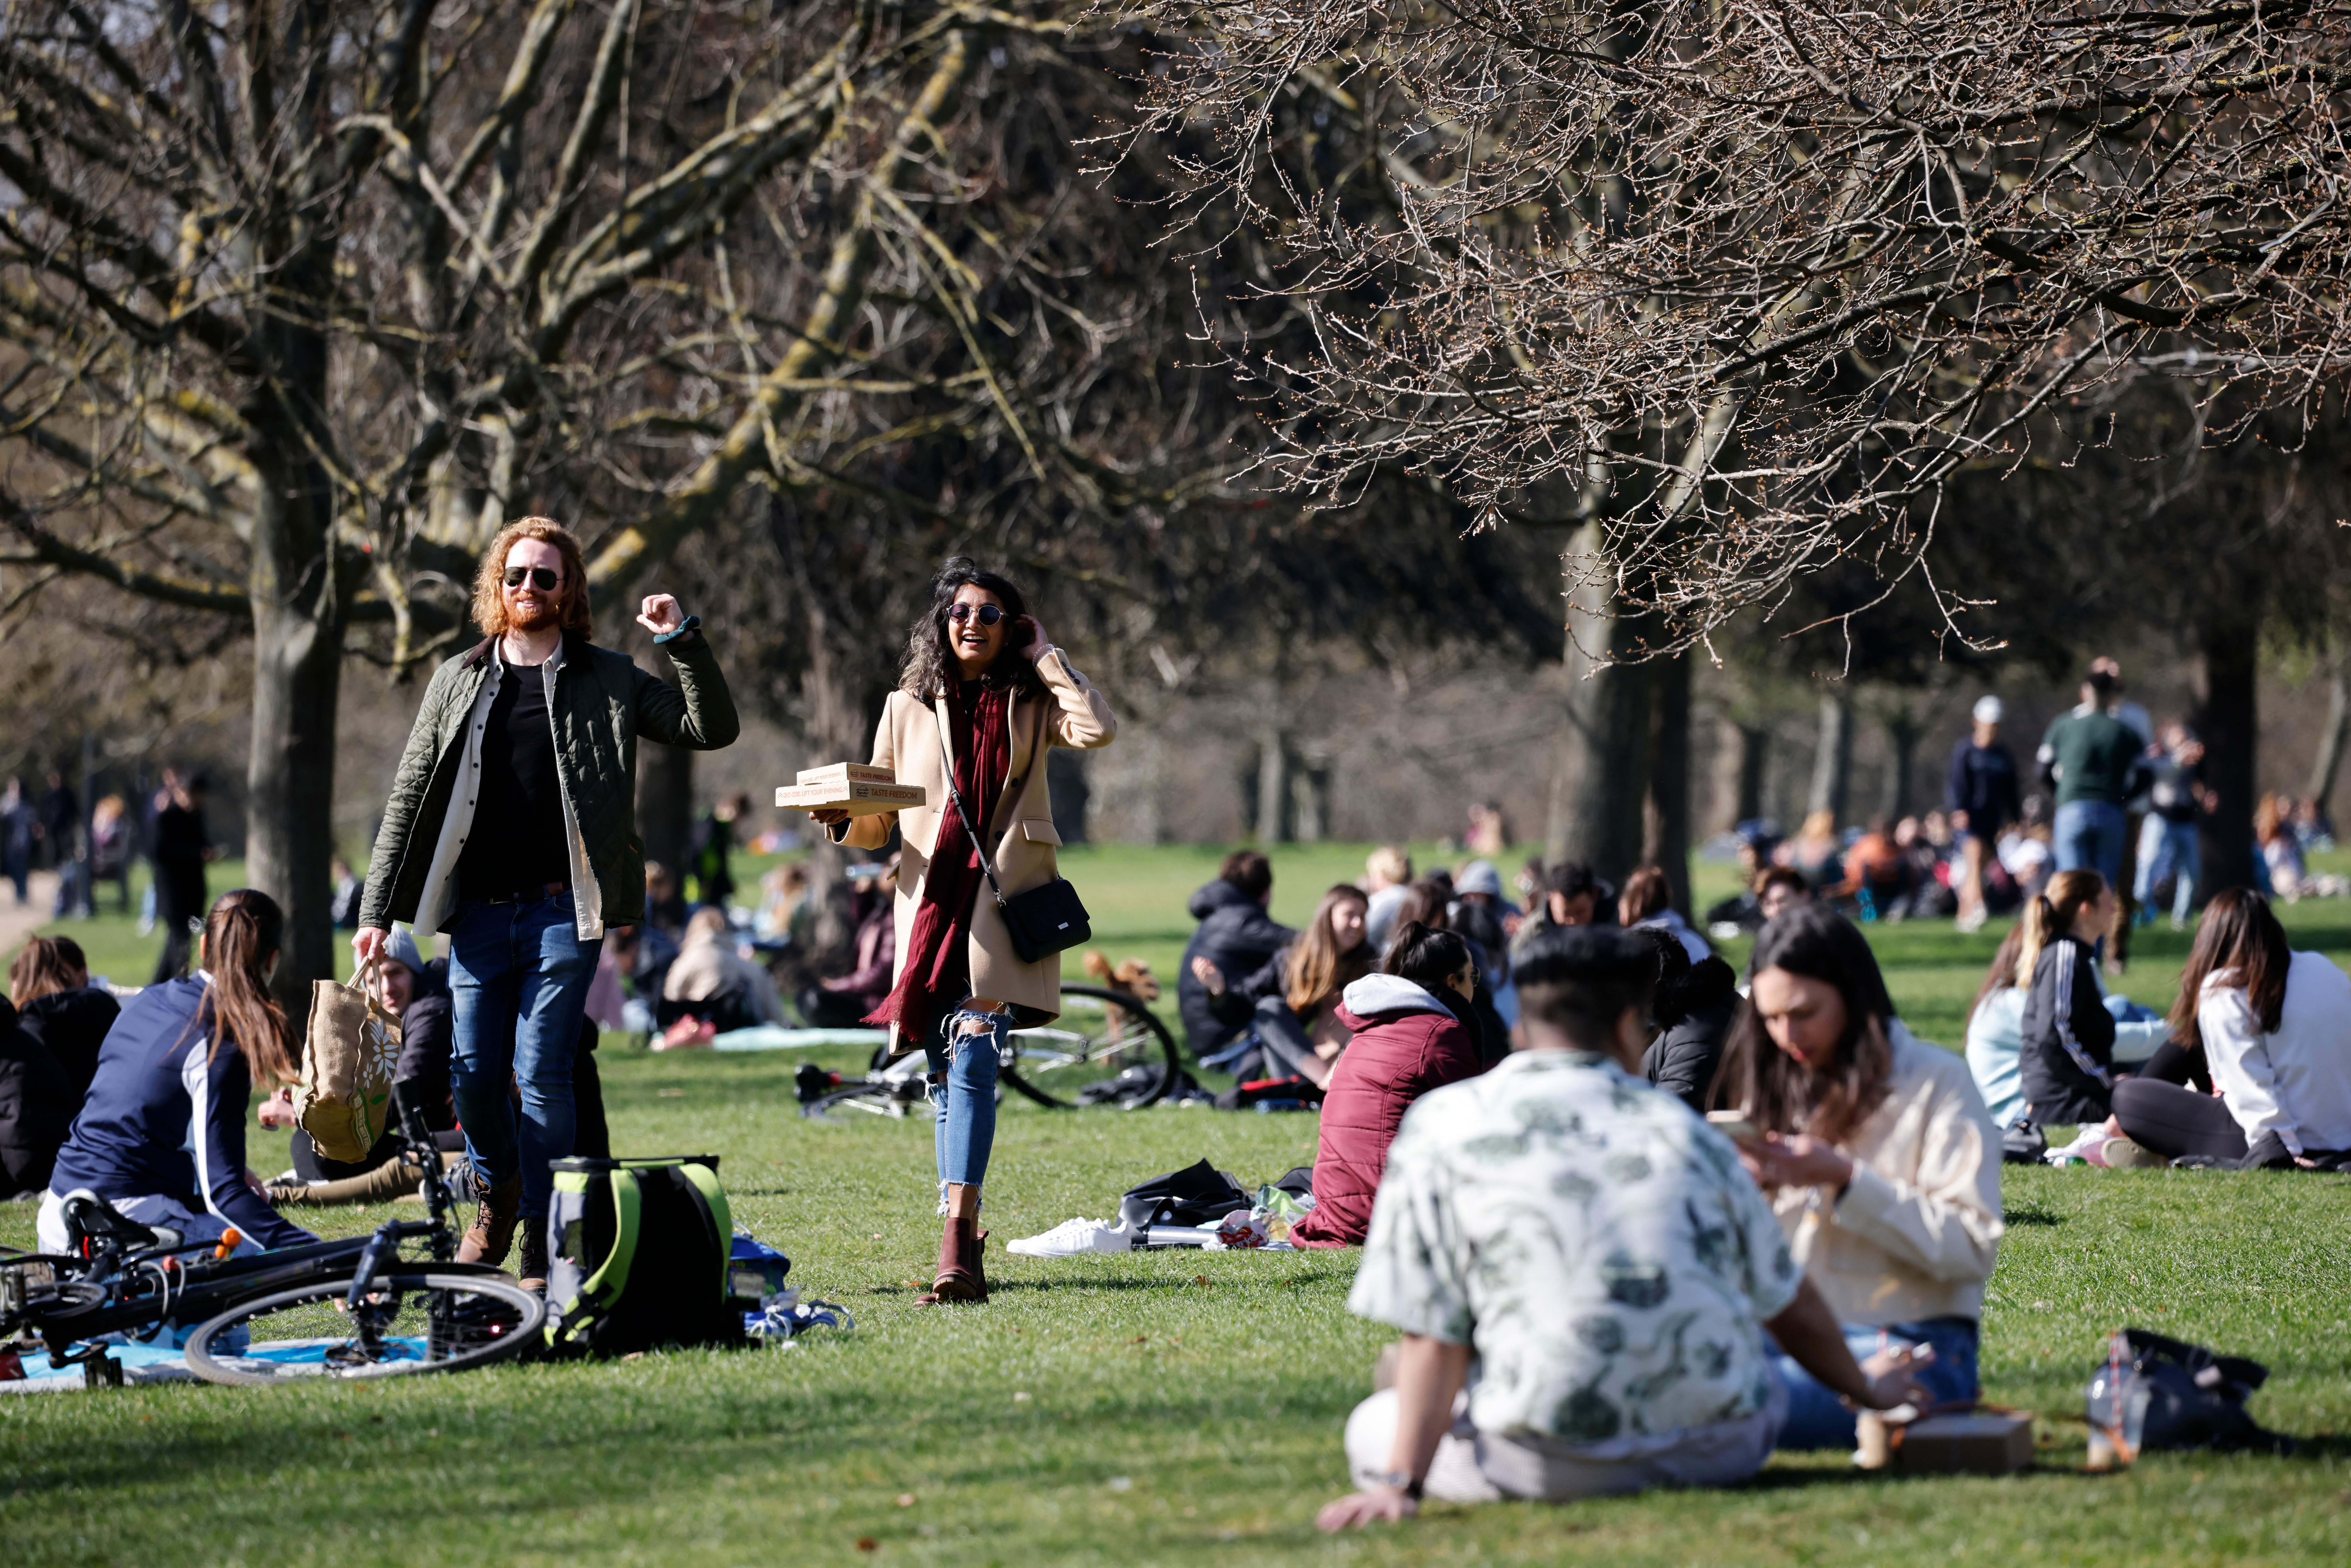 <p>in Hyde Park in central London on April 2, 2021 as life continues following an easing of the coronavirus restrictions to allow people from more than one household to meet outdoors. (Photo by Tolga Akmen / AFP) (Photo by TOLGA AKMEN/AFP via Getty Images)</p>